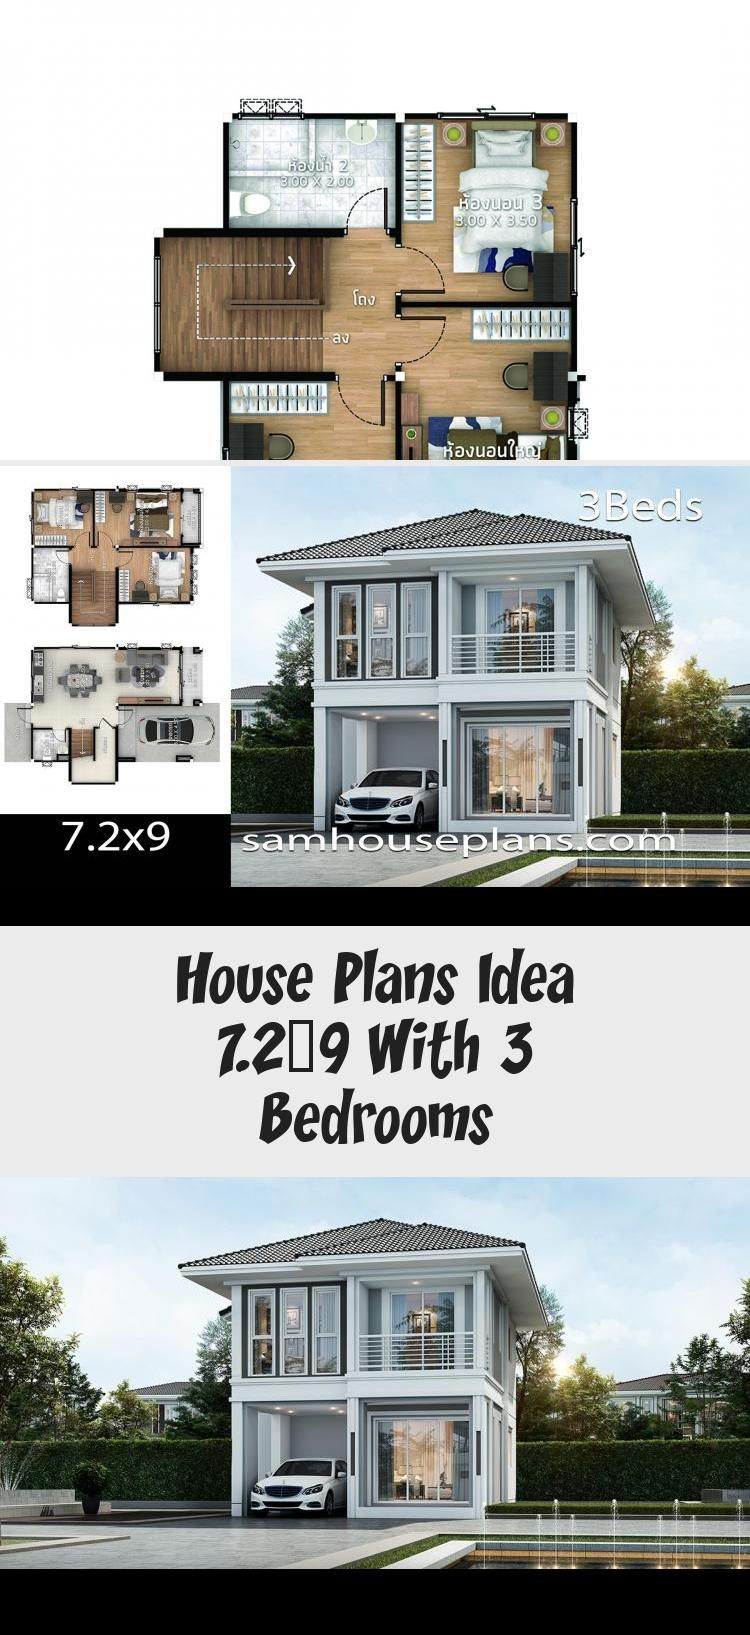 House Plans Idea 7 2x9 With 3 Bedrooms Sam House Plans Modernhouseplansmansions Modernhouseplanscheap Mode In 2020 Pool House Plans House Plans Modern House Plans